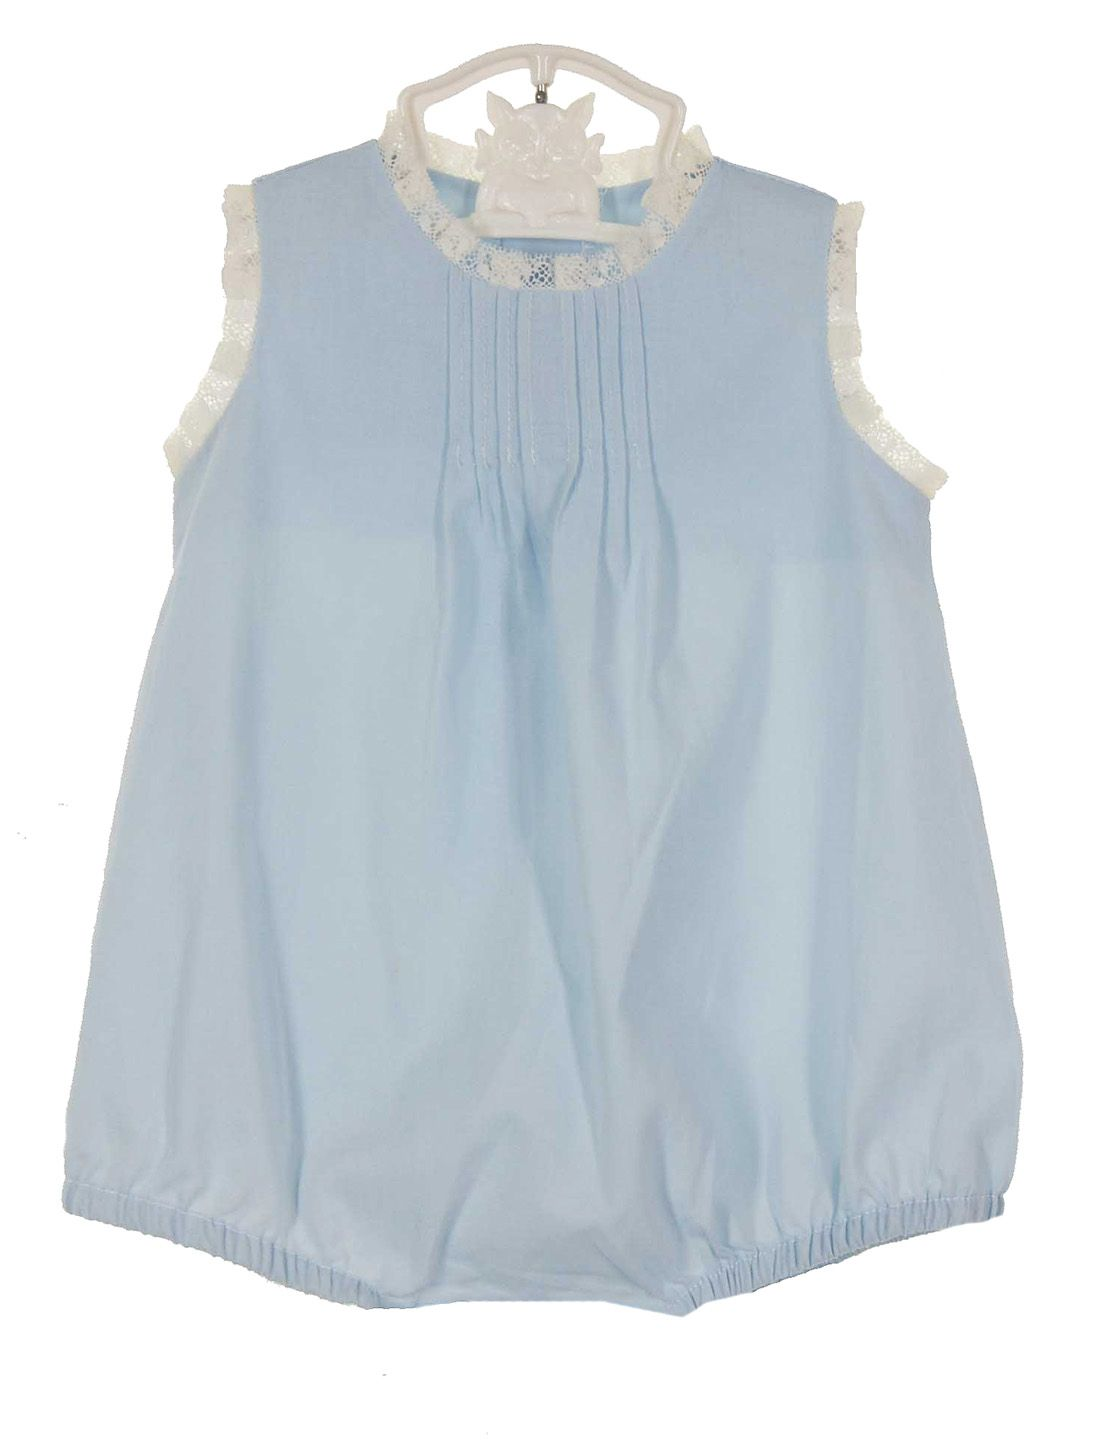 7ef6ba255463 NEW Remember Nguyen (Remember When) Blue Vintage Style Sleeveless Cotton  Romper with Ivory Lace